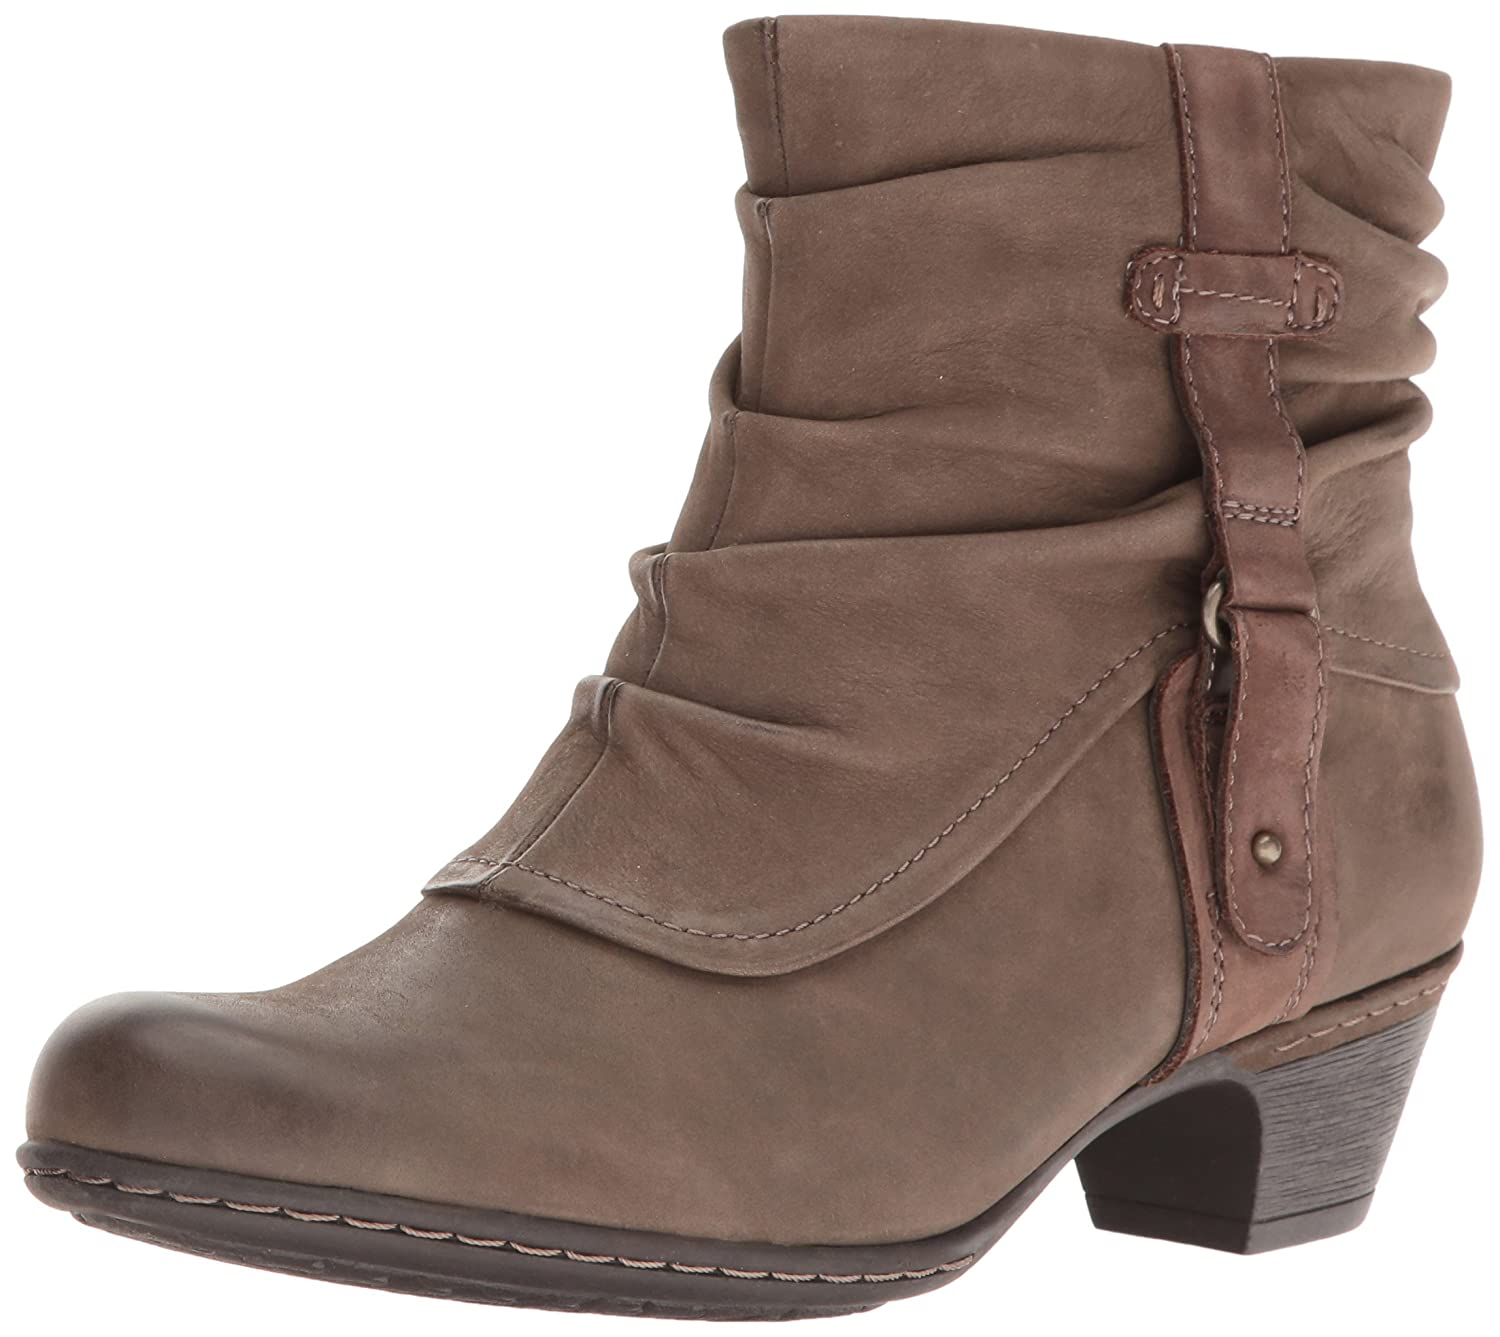 Cobb Hill Rockport Women's Alexandra Boot B00OKSZH7E 11 B(M) US|Stone